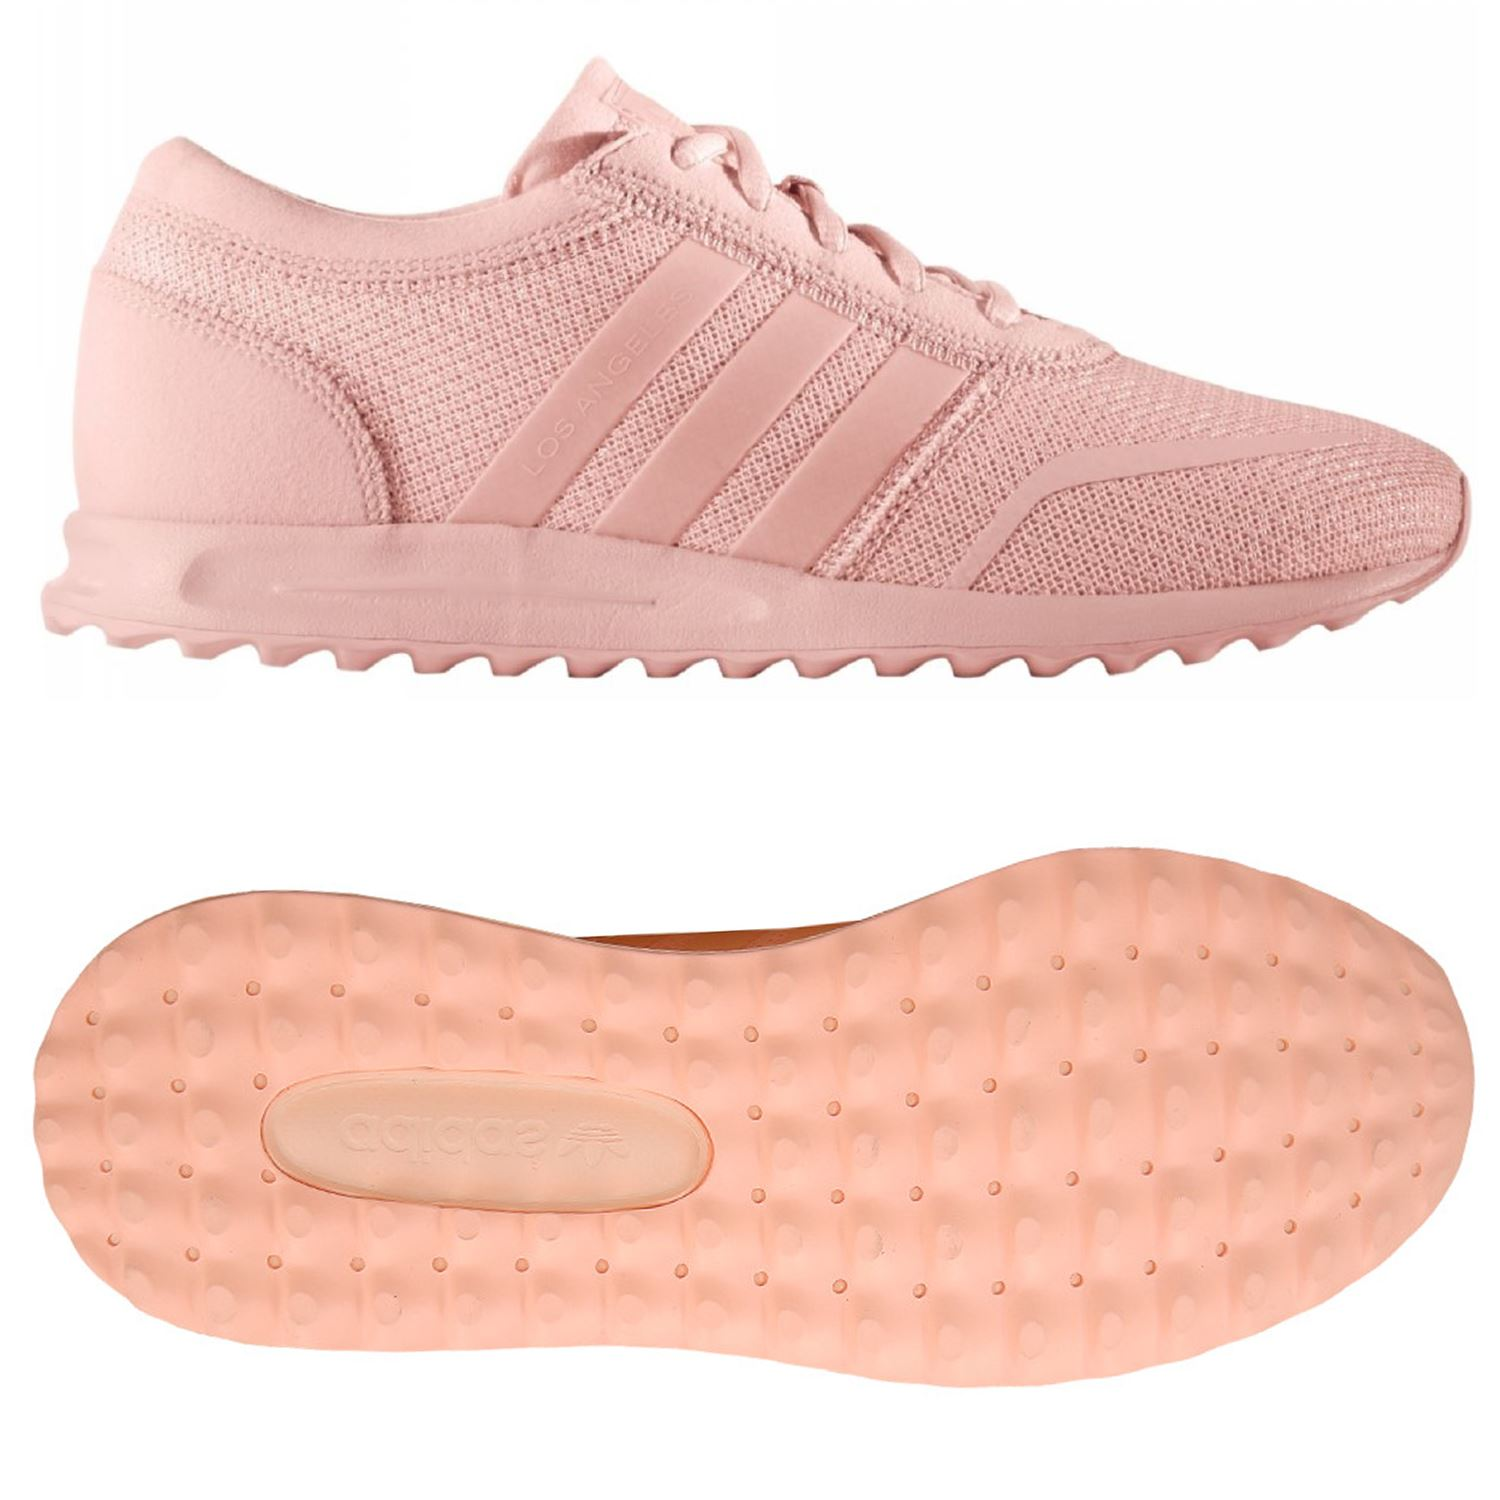 1910b395d9ae adidas ORIGINALS LOS ANGELES TRAINERS PINK GIRLS WOMEN S JUNIOR SHOES  SNEAKERS